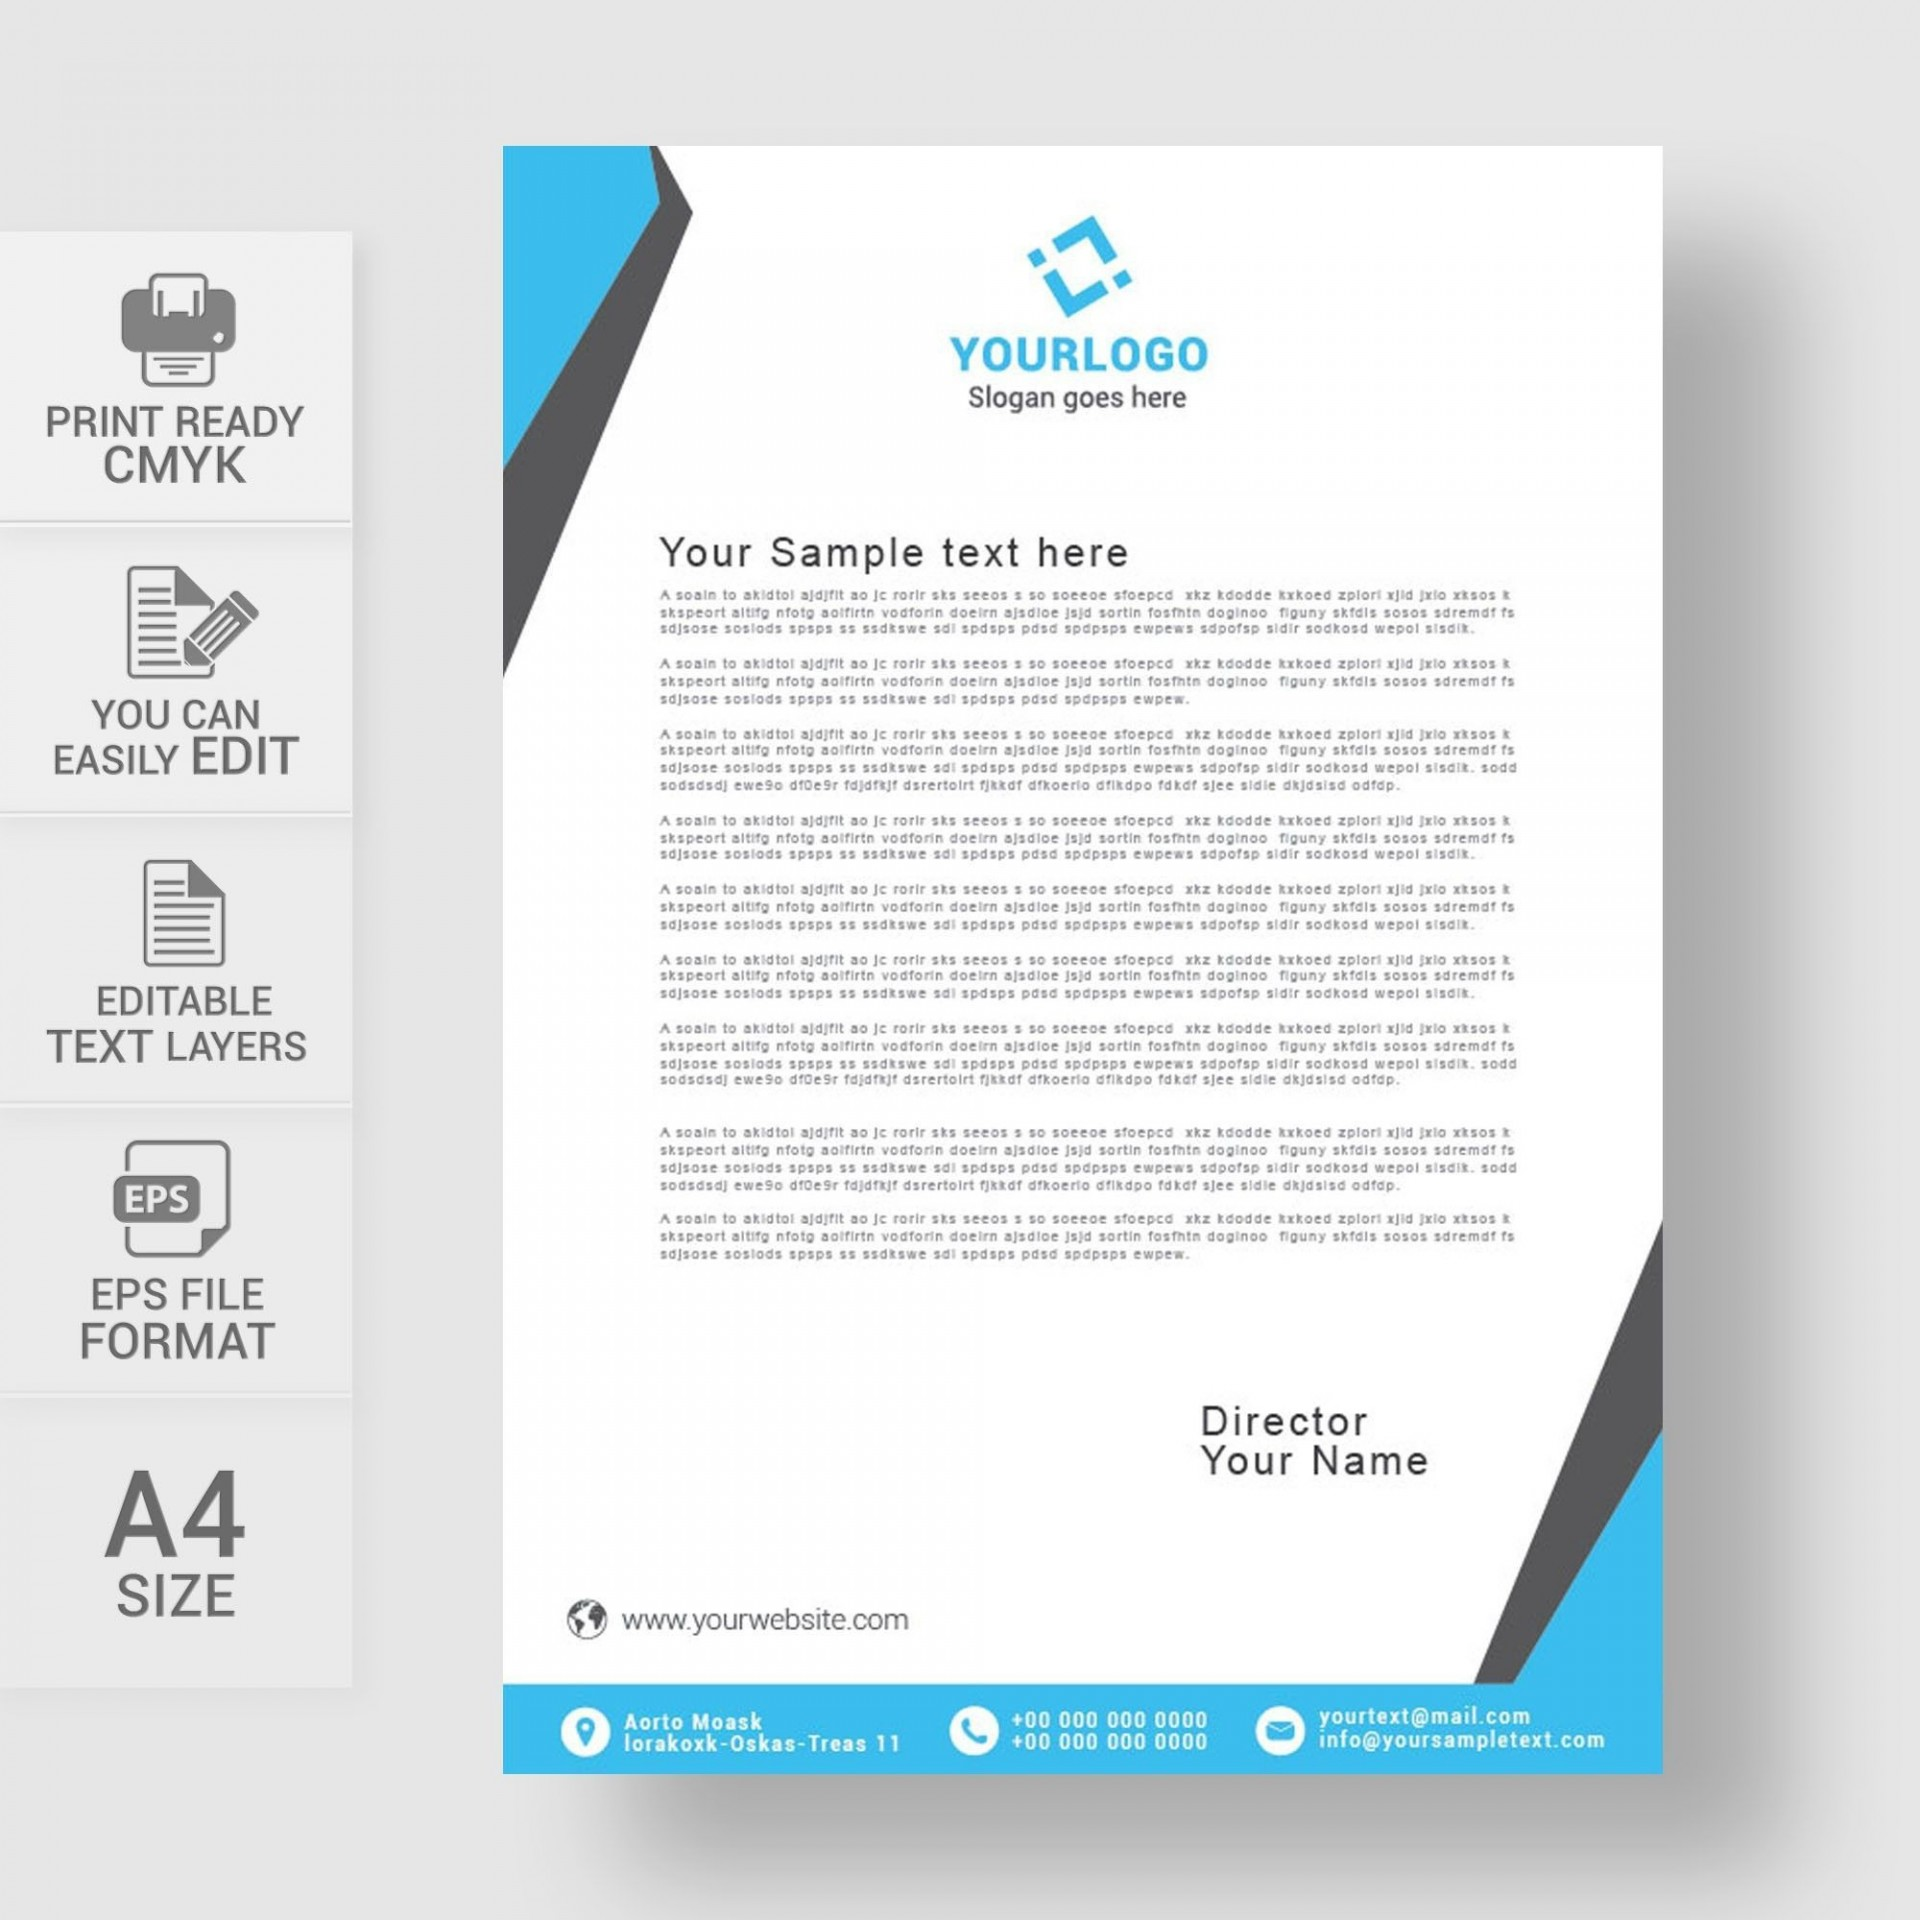 002 Sensational Letterhead Sample In Word Format Free Download Highest Clarity  Design Template Psd1920